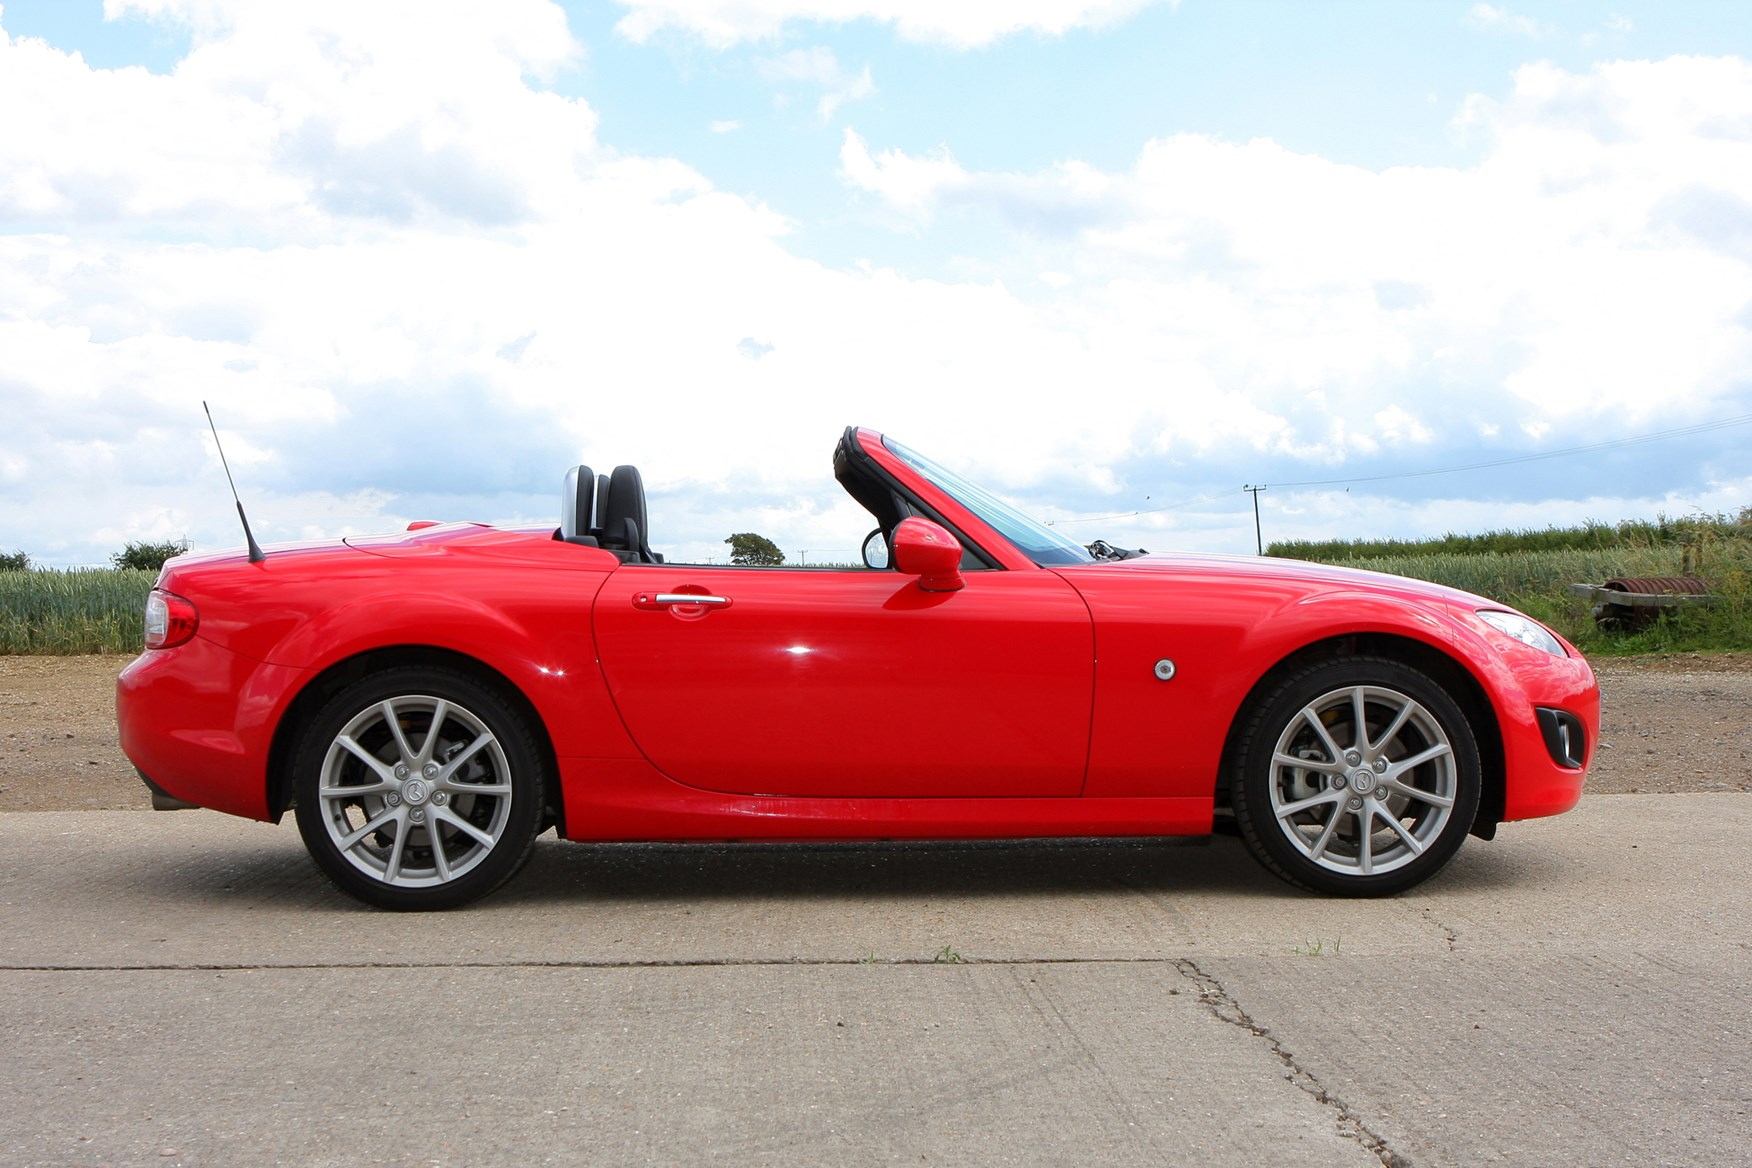 Mazda Mx 5 Convertible 2005 2015 Features Equipment And Home Audio Mx5 Mk3 Radio Electronic Circuit Board How Much Is It To Insure